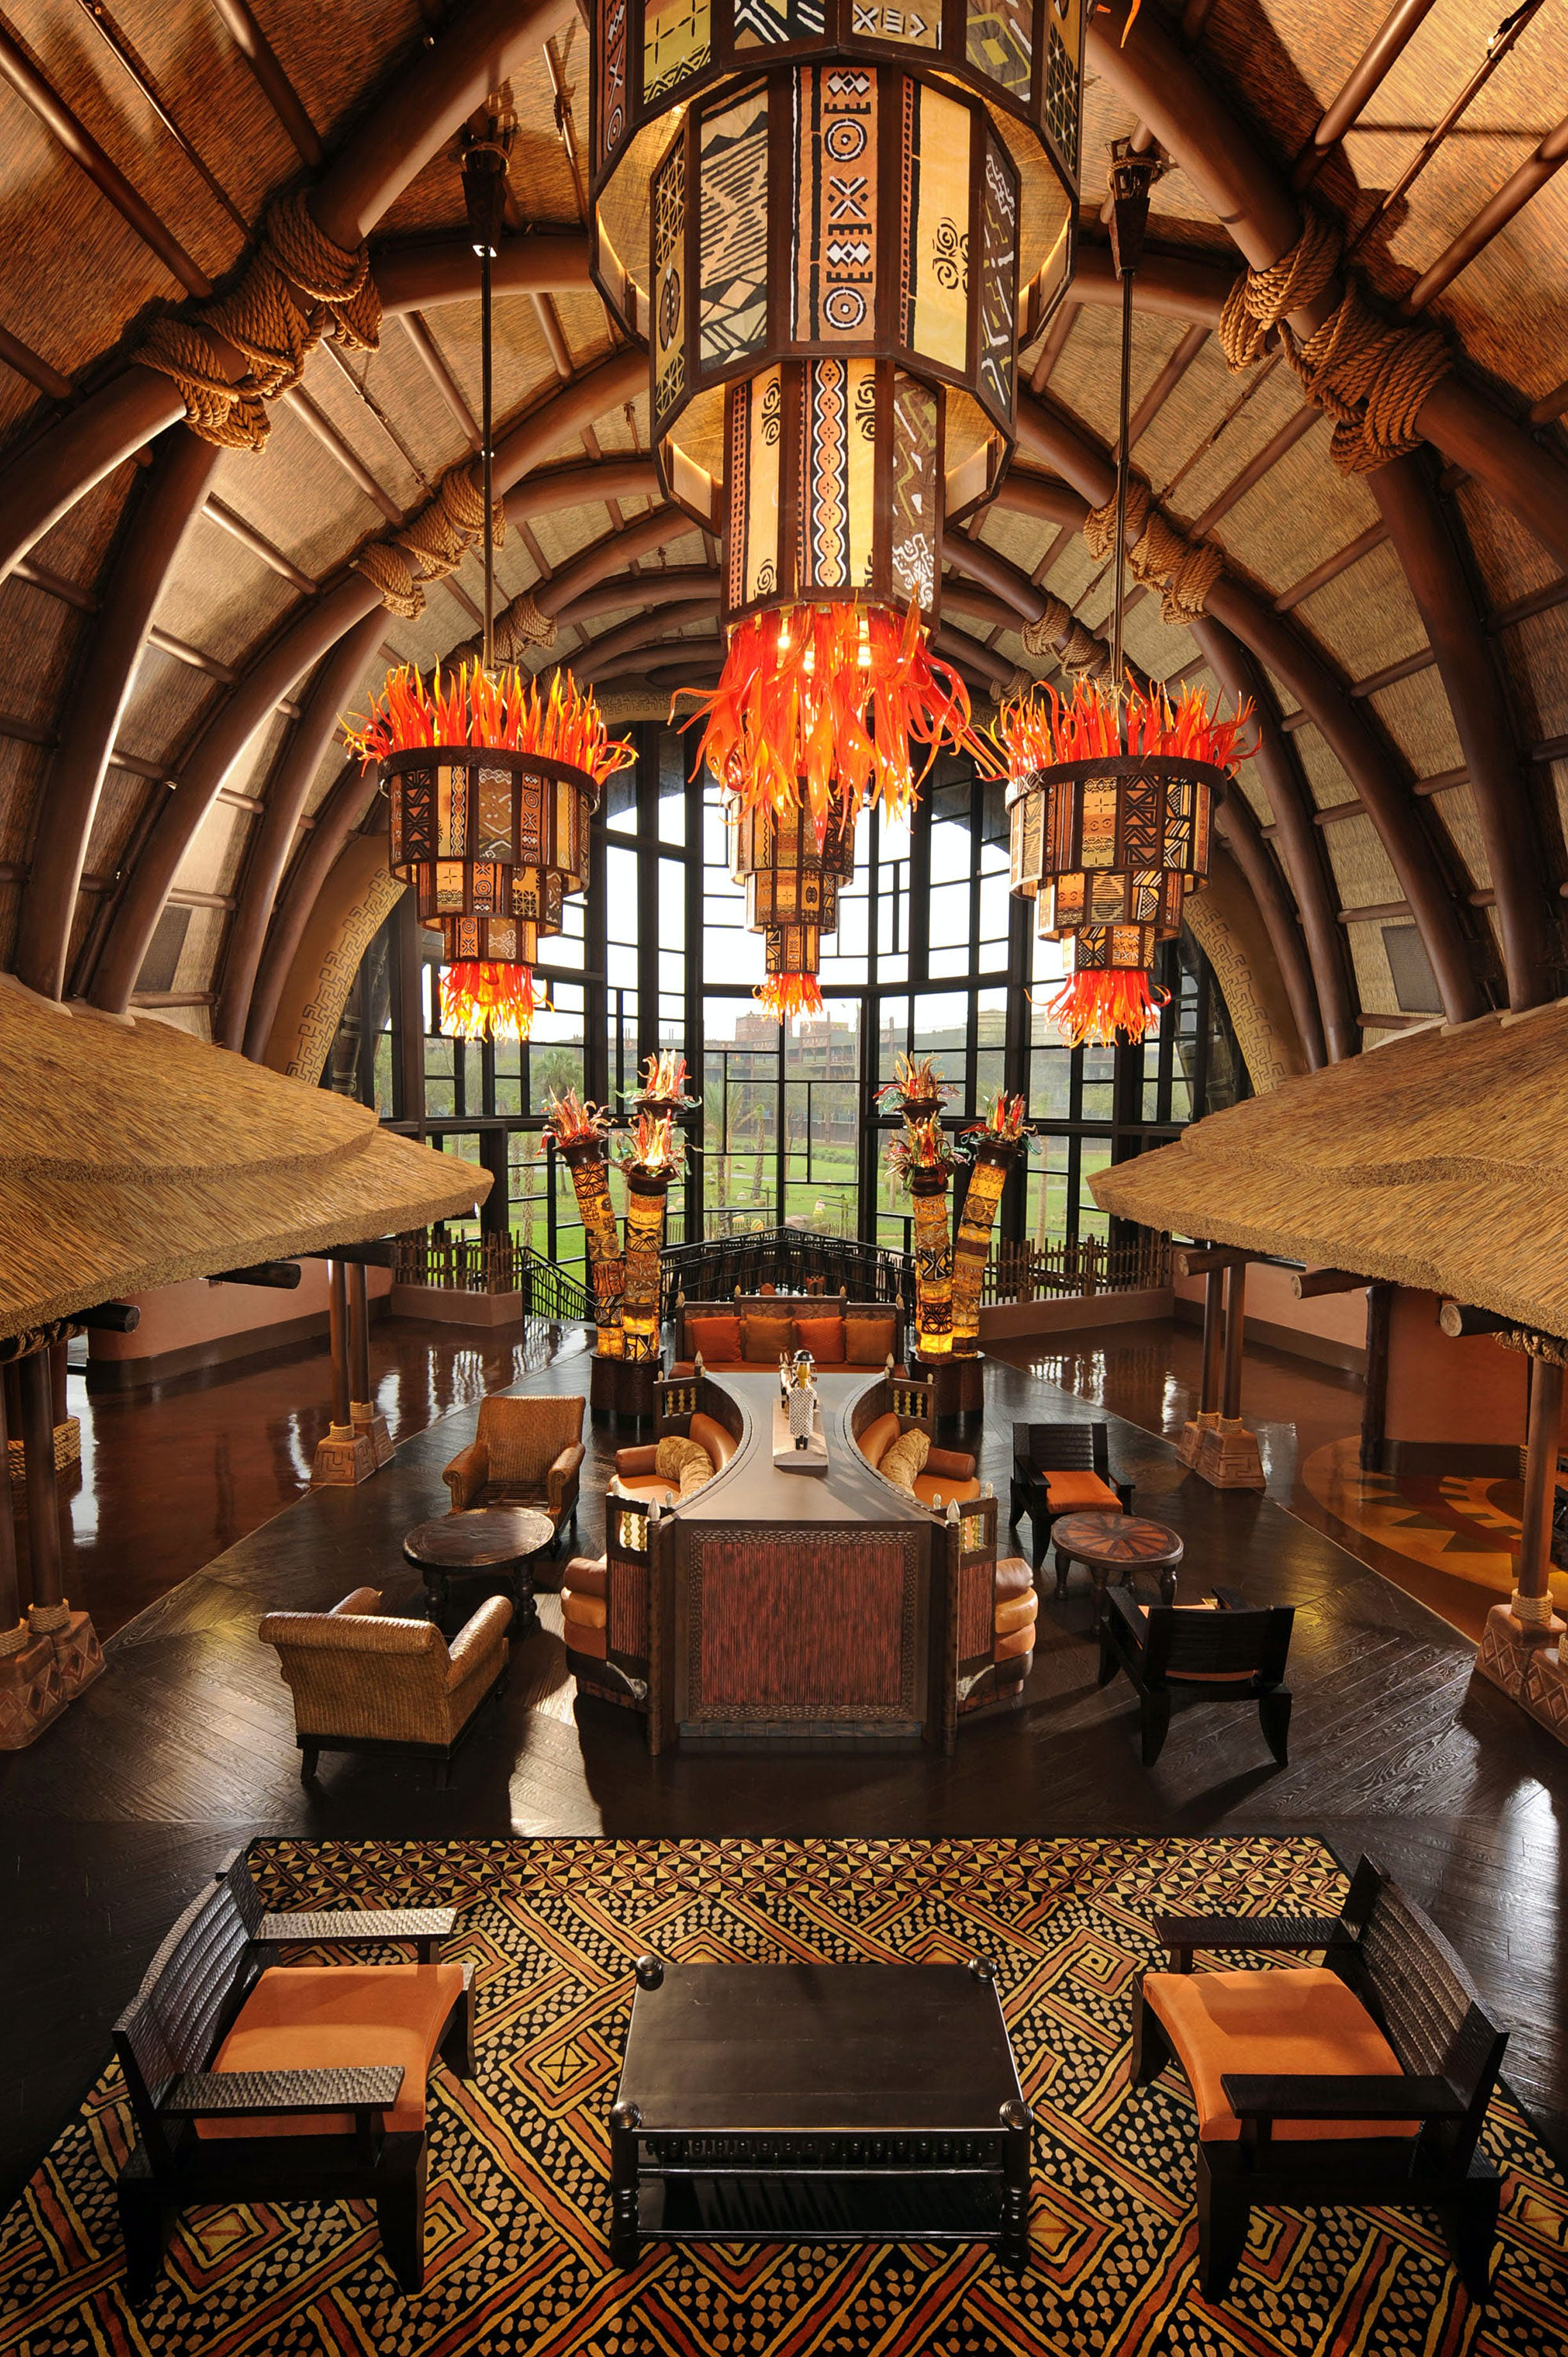 A hotel lobby with arching windows, Africa-inspired art, floor lamps and hand-carved wooden columns